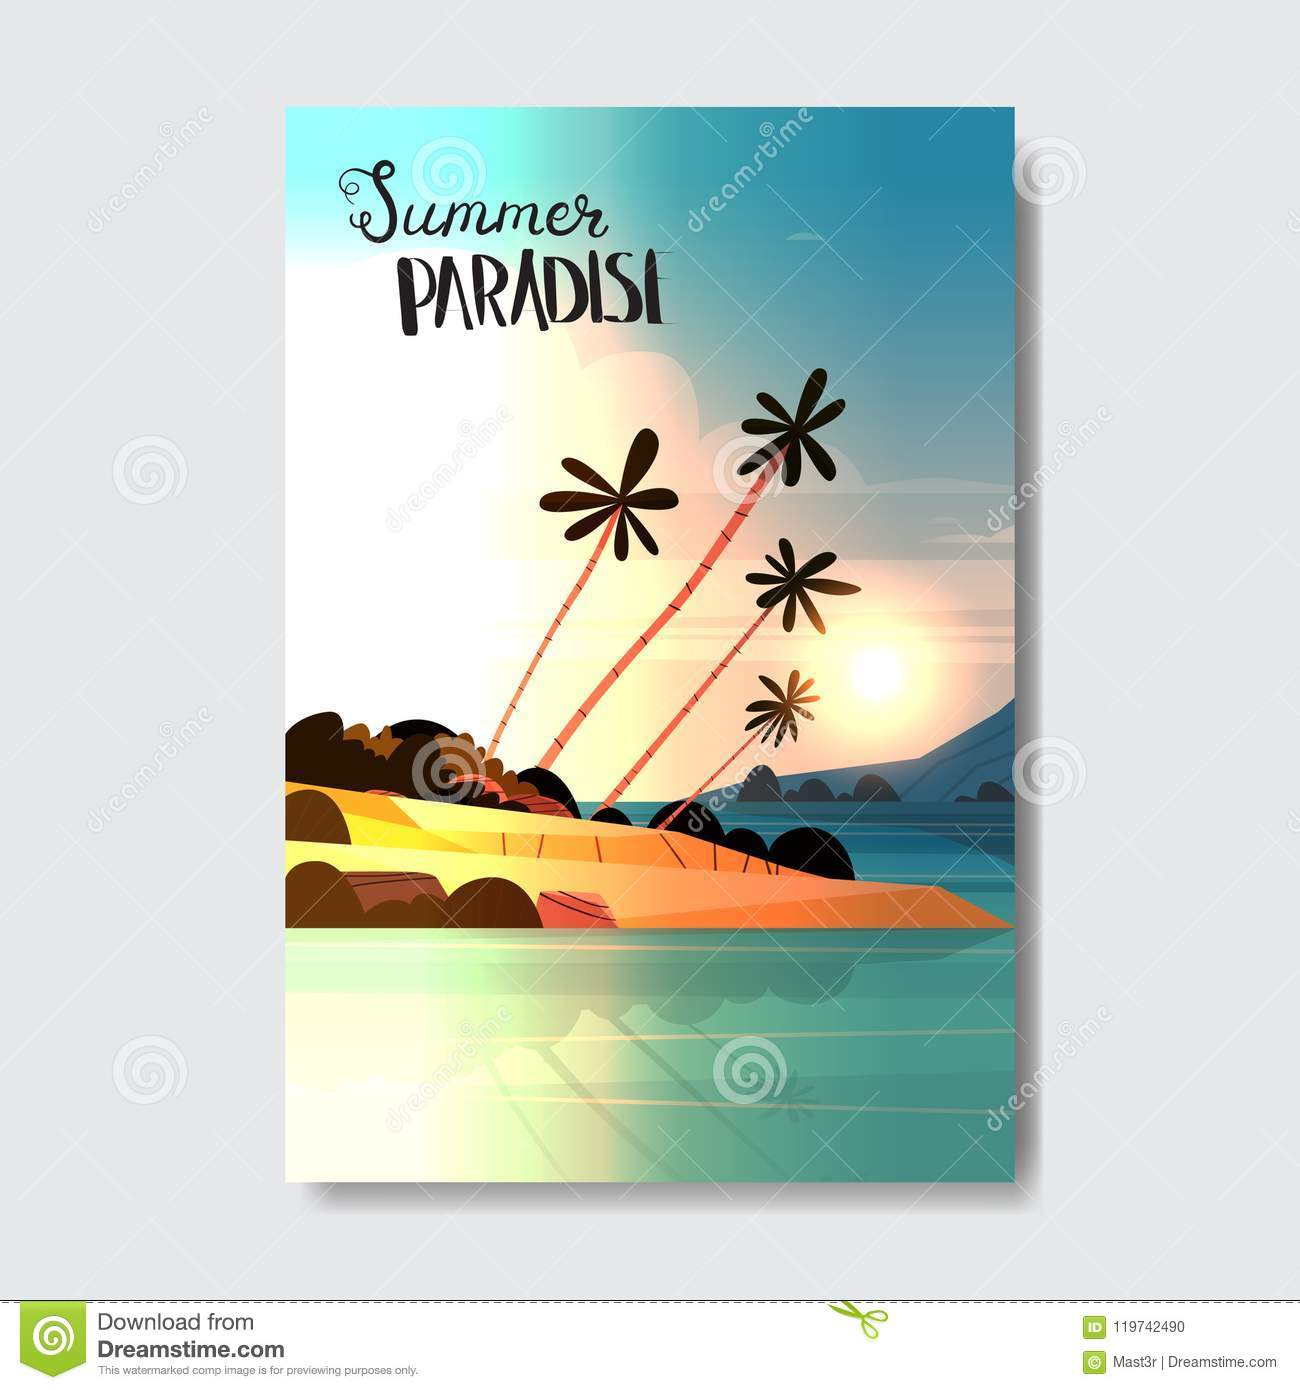 Verzamelingen Posters New Maldives Beach and Sea Palm Trees on a Tropical Island Paradise Poster